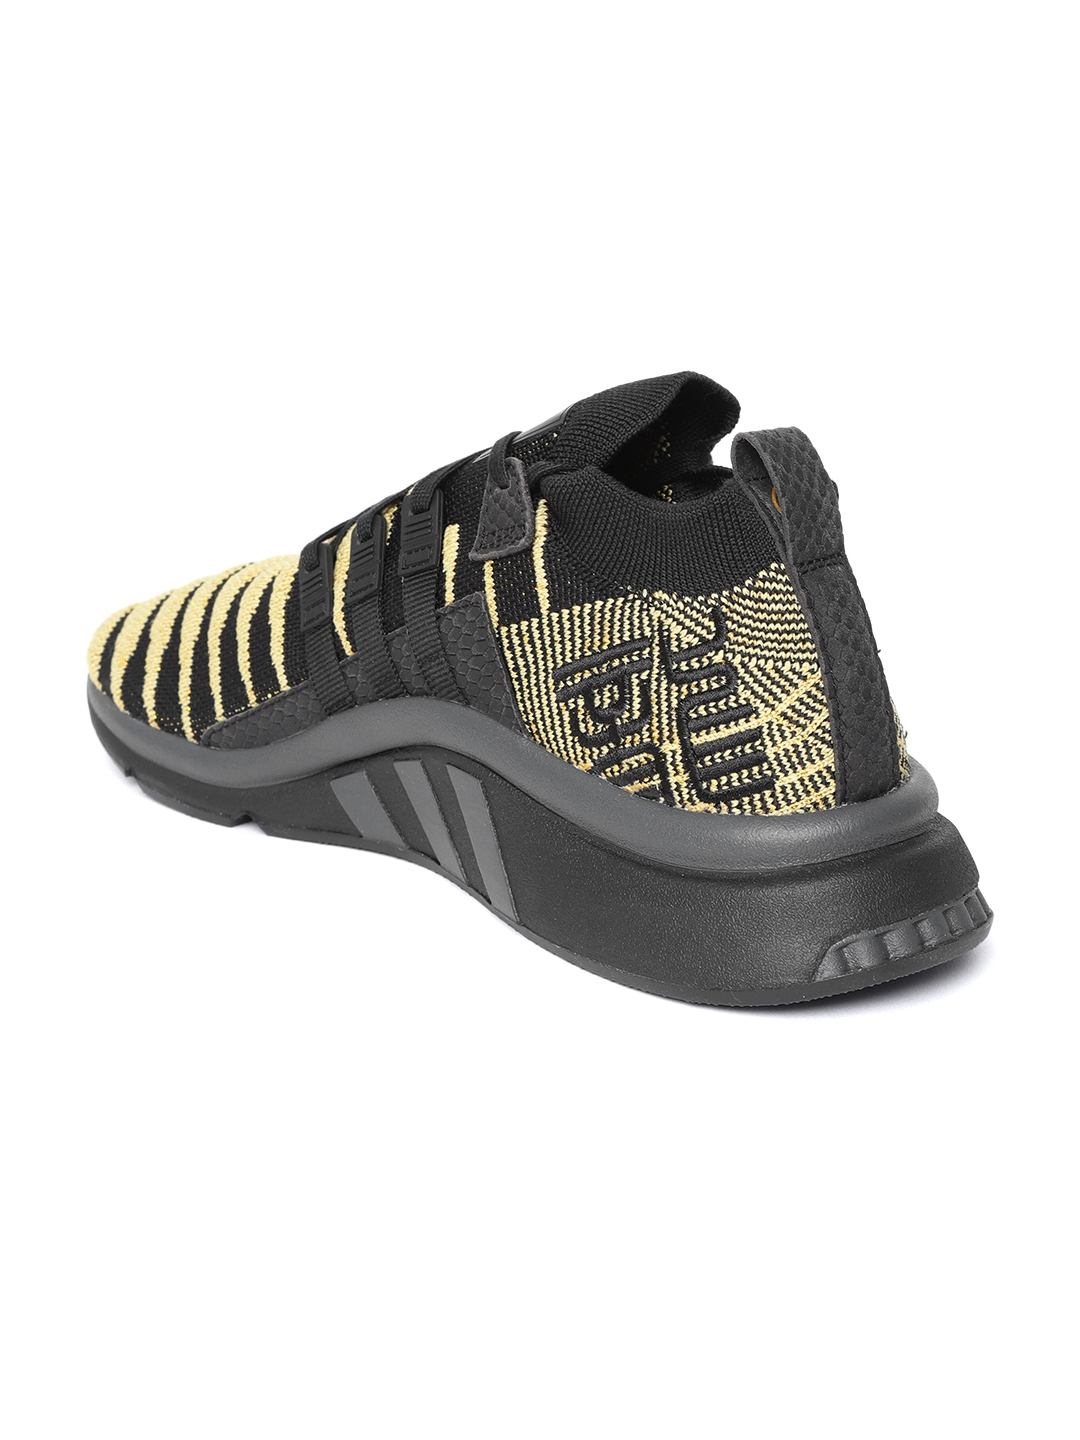 the best attitude 71ad2 bf245 ADIDAS Originals Dragonball Z Men Khaki   Black EQT Support Mid ADV  Primeknit Sneakers